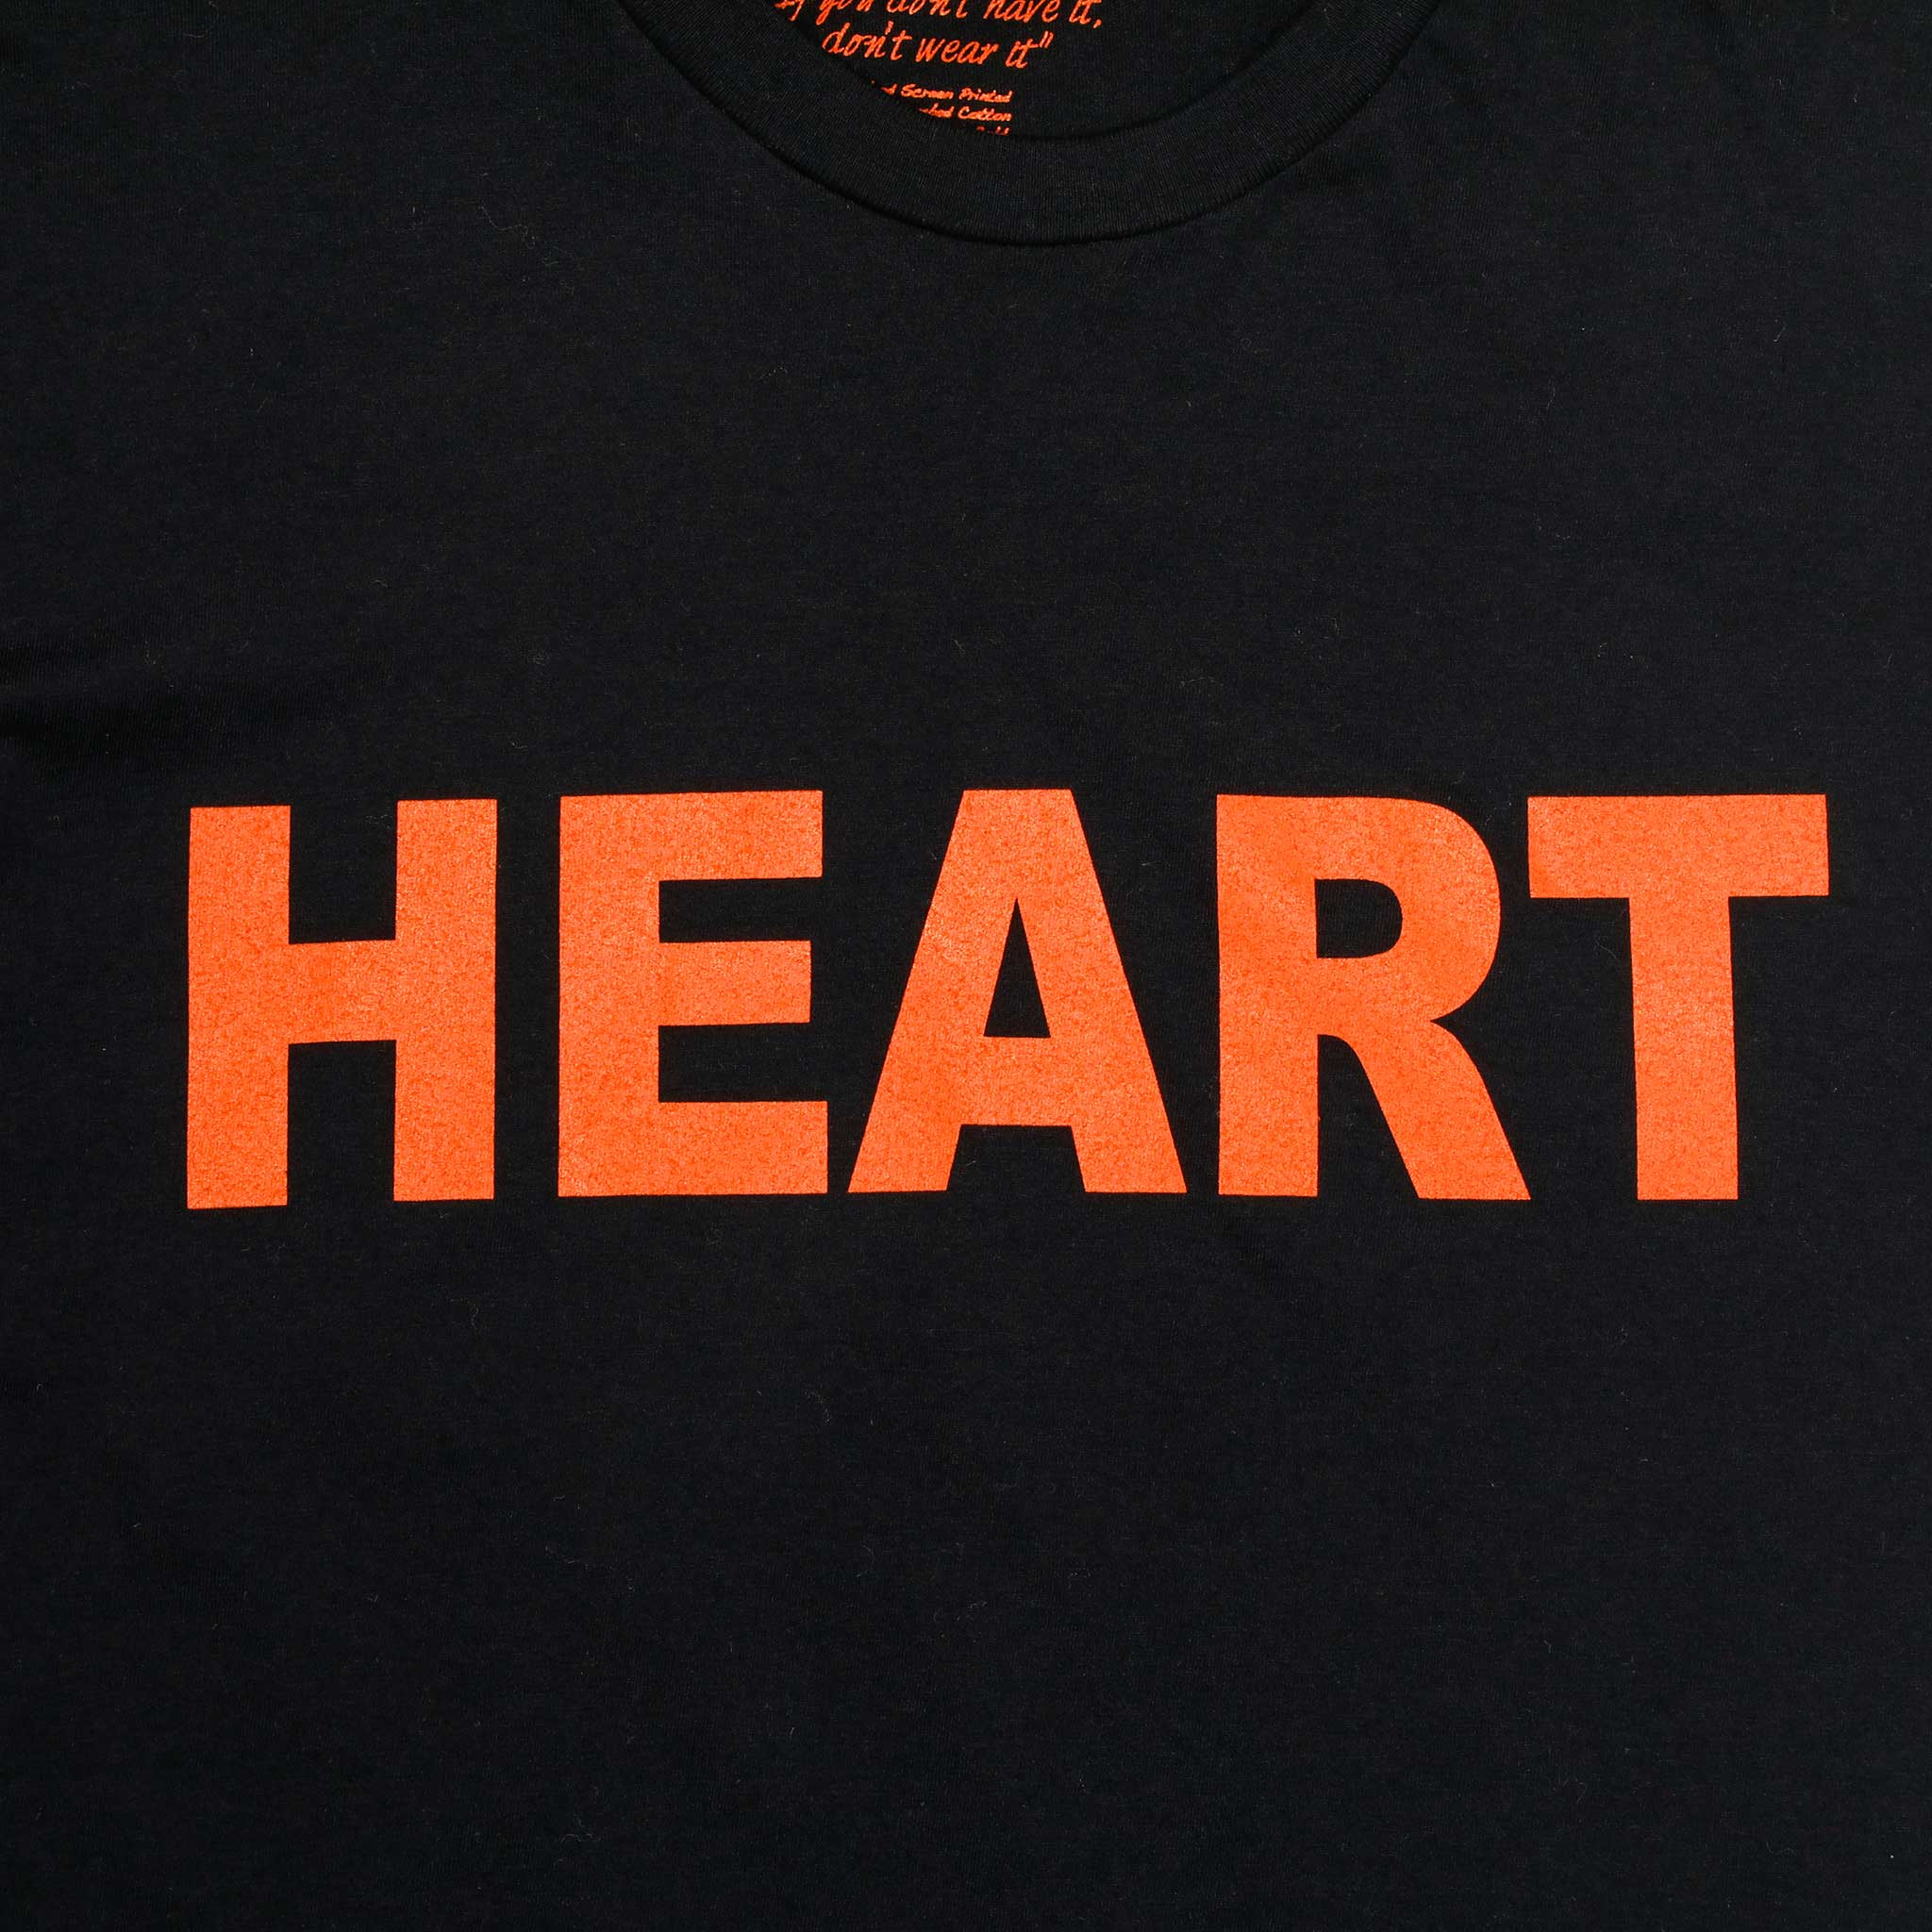 Heart Black and Orange